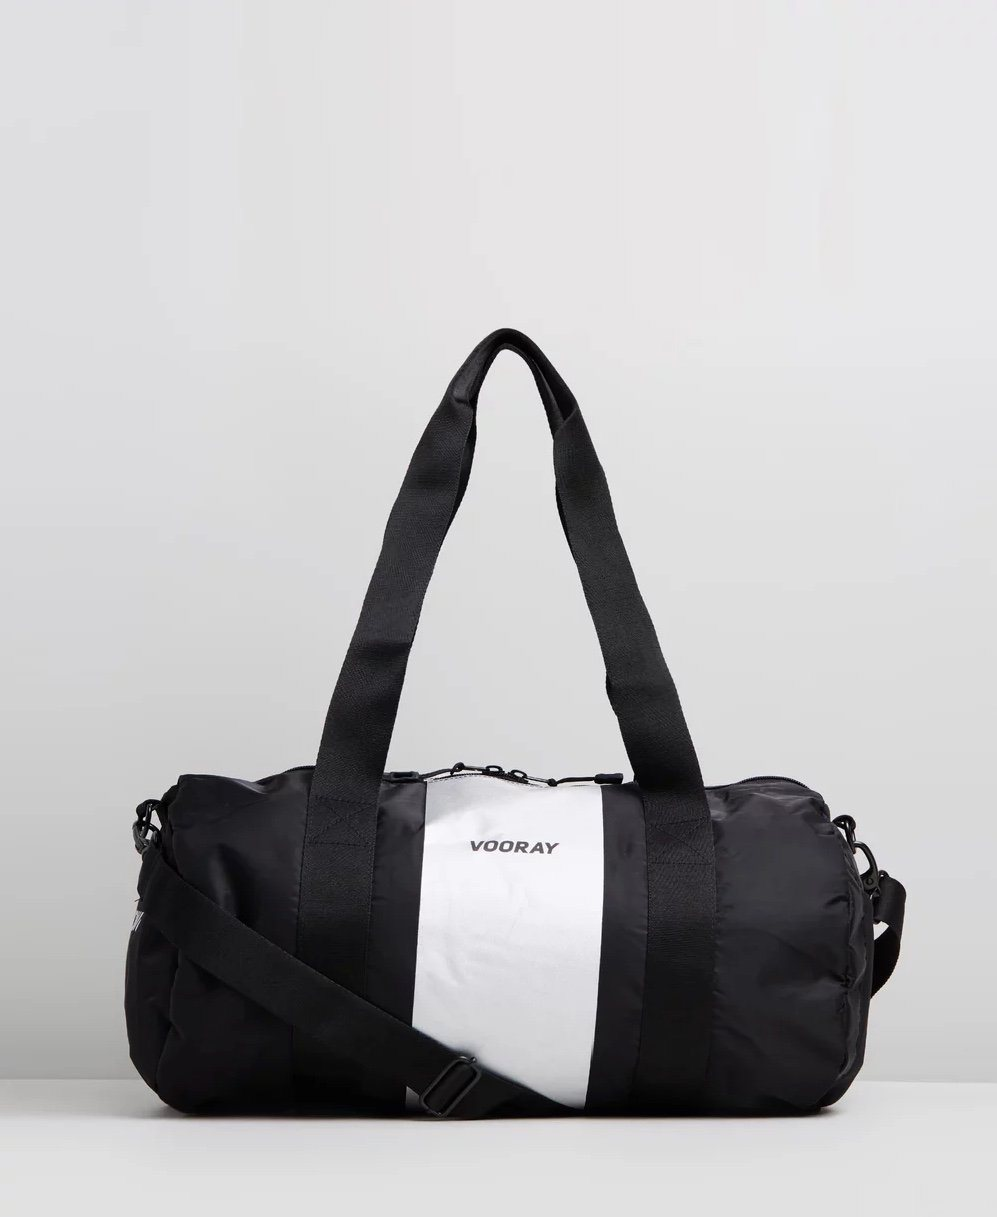 Vooray Iconic Duffel Bag - Stripe